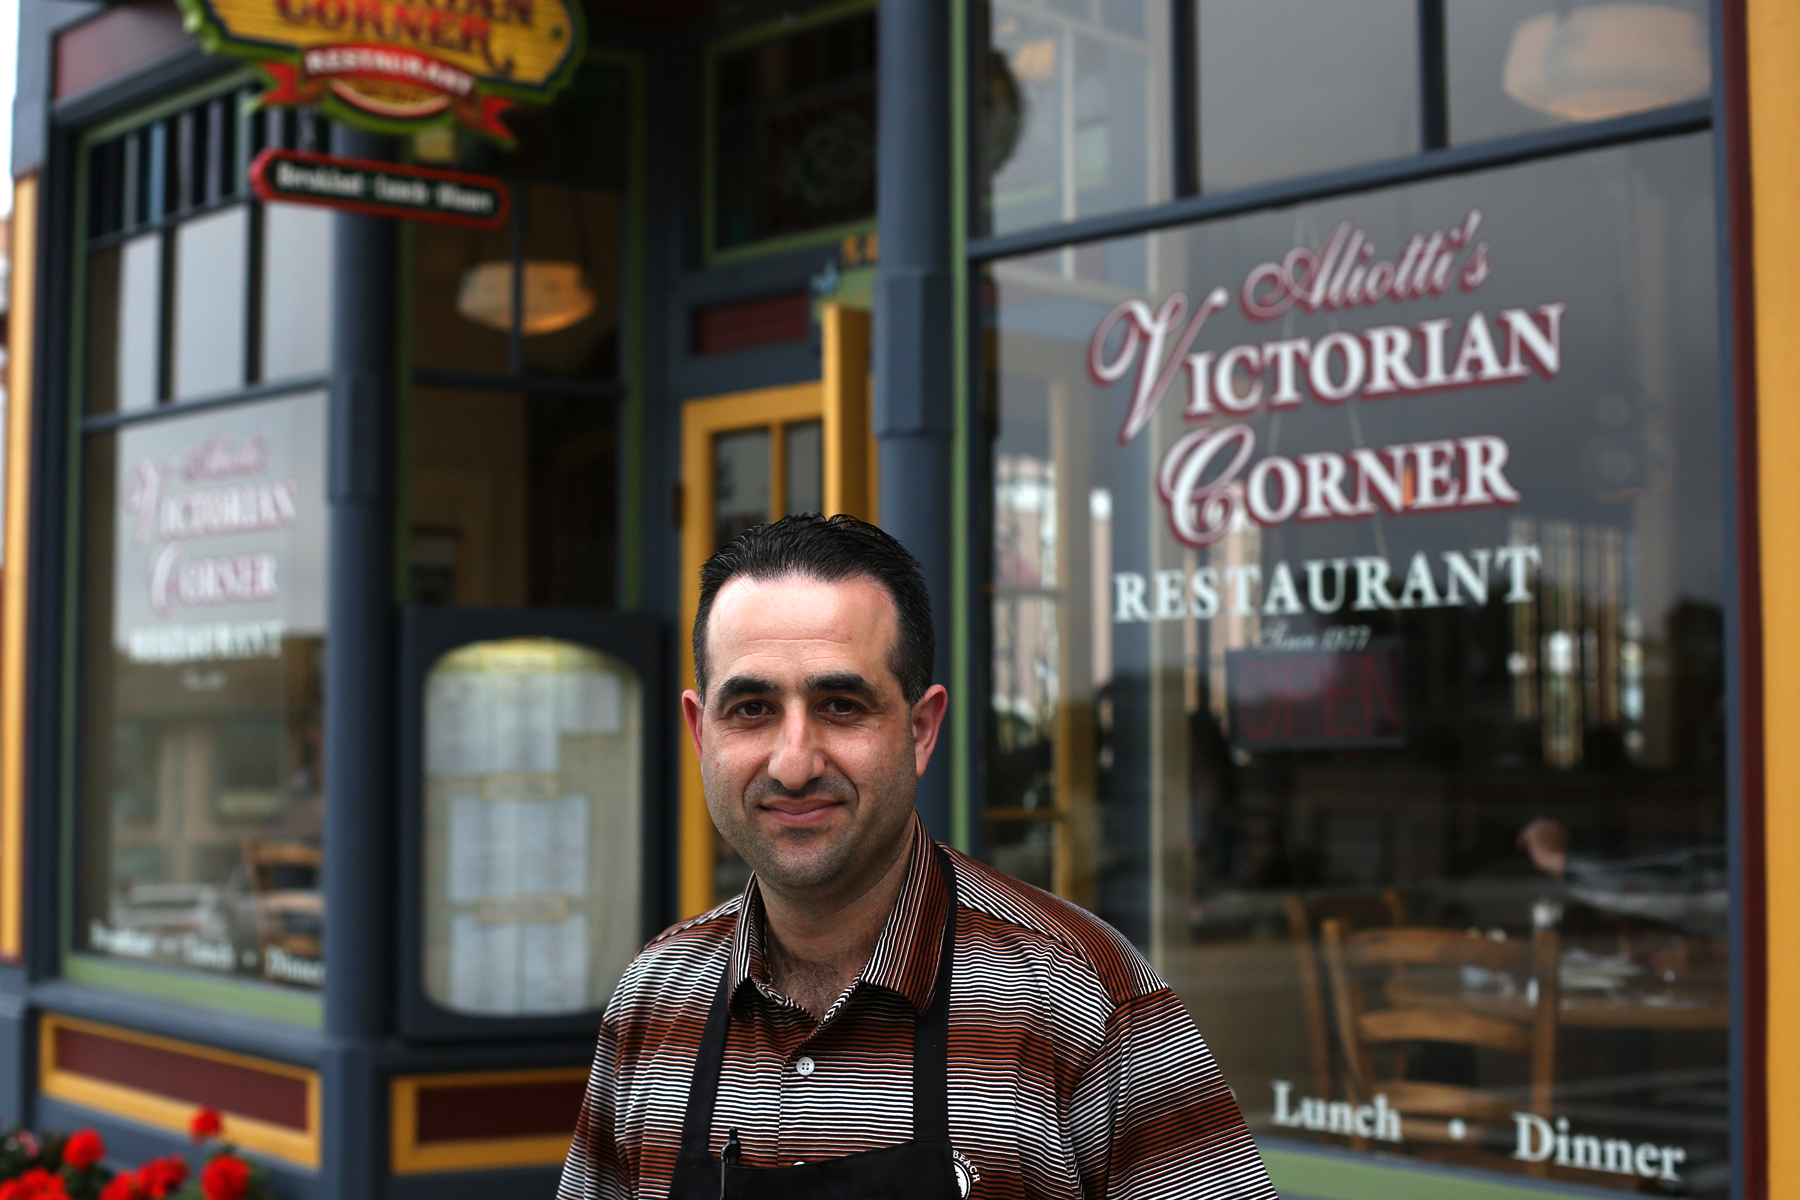 Aliotti's Victorian TCorner Restaurant Indigo Payments Customer